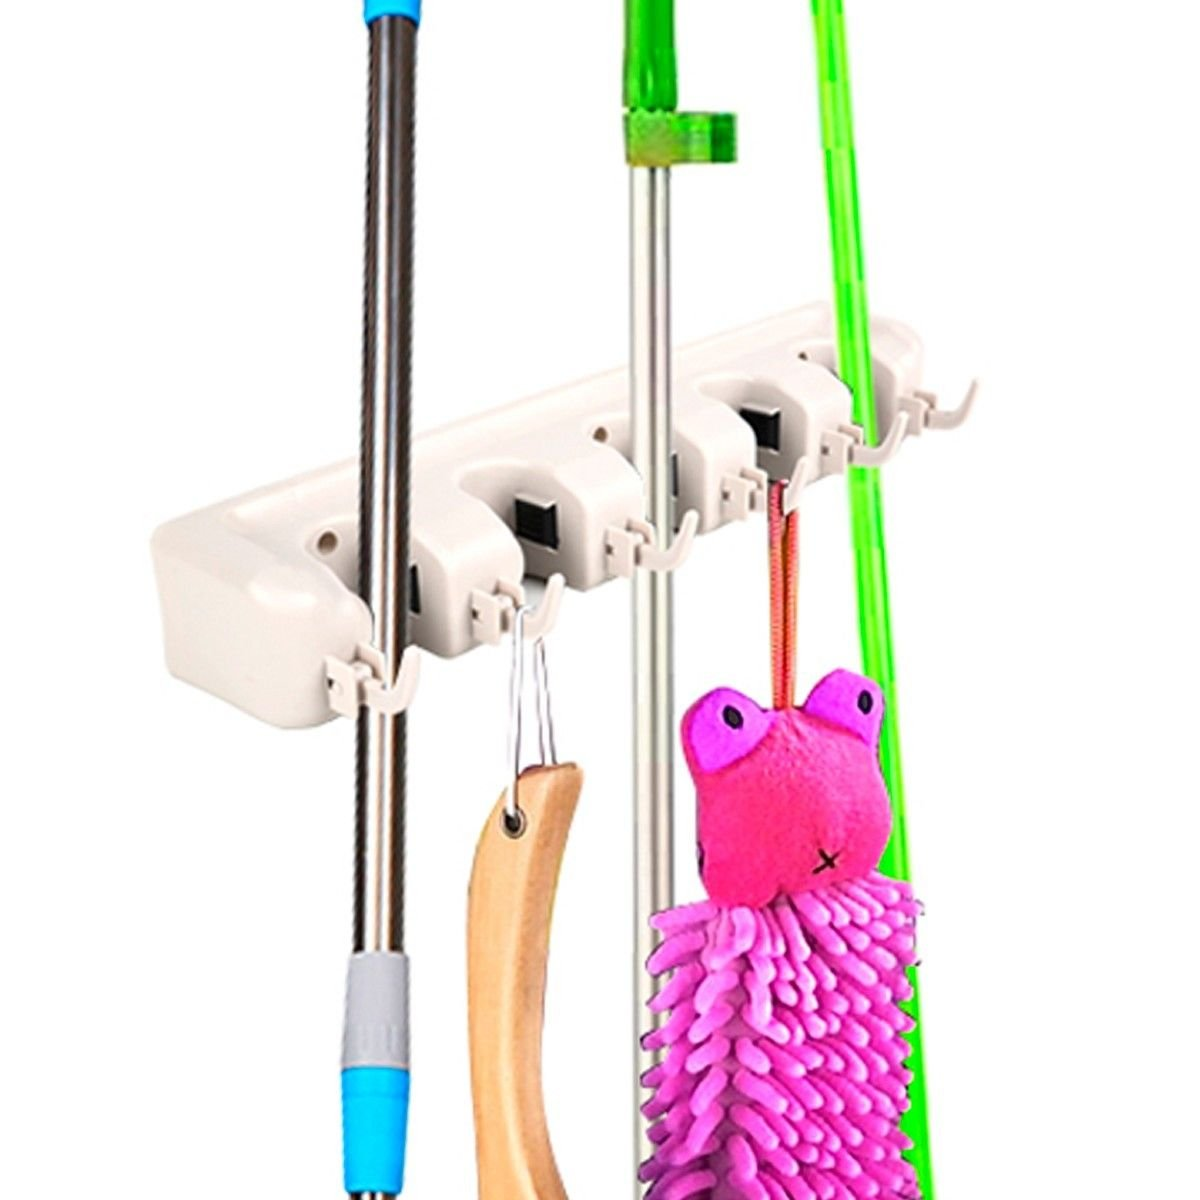 Generic YCUS150713-040  Mountede Kitchen S Home Kitchen Mop Holder Storage Broom Organizer Hanger 5 Position Wall Mounted Mop Holder